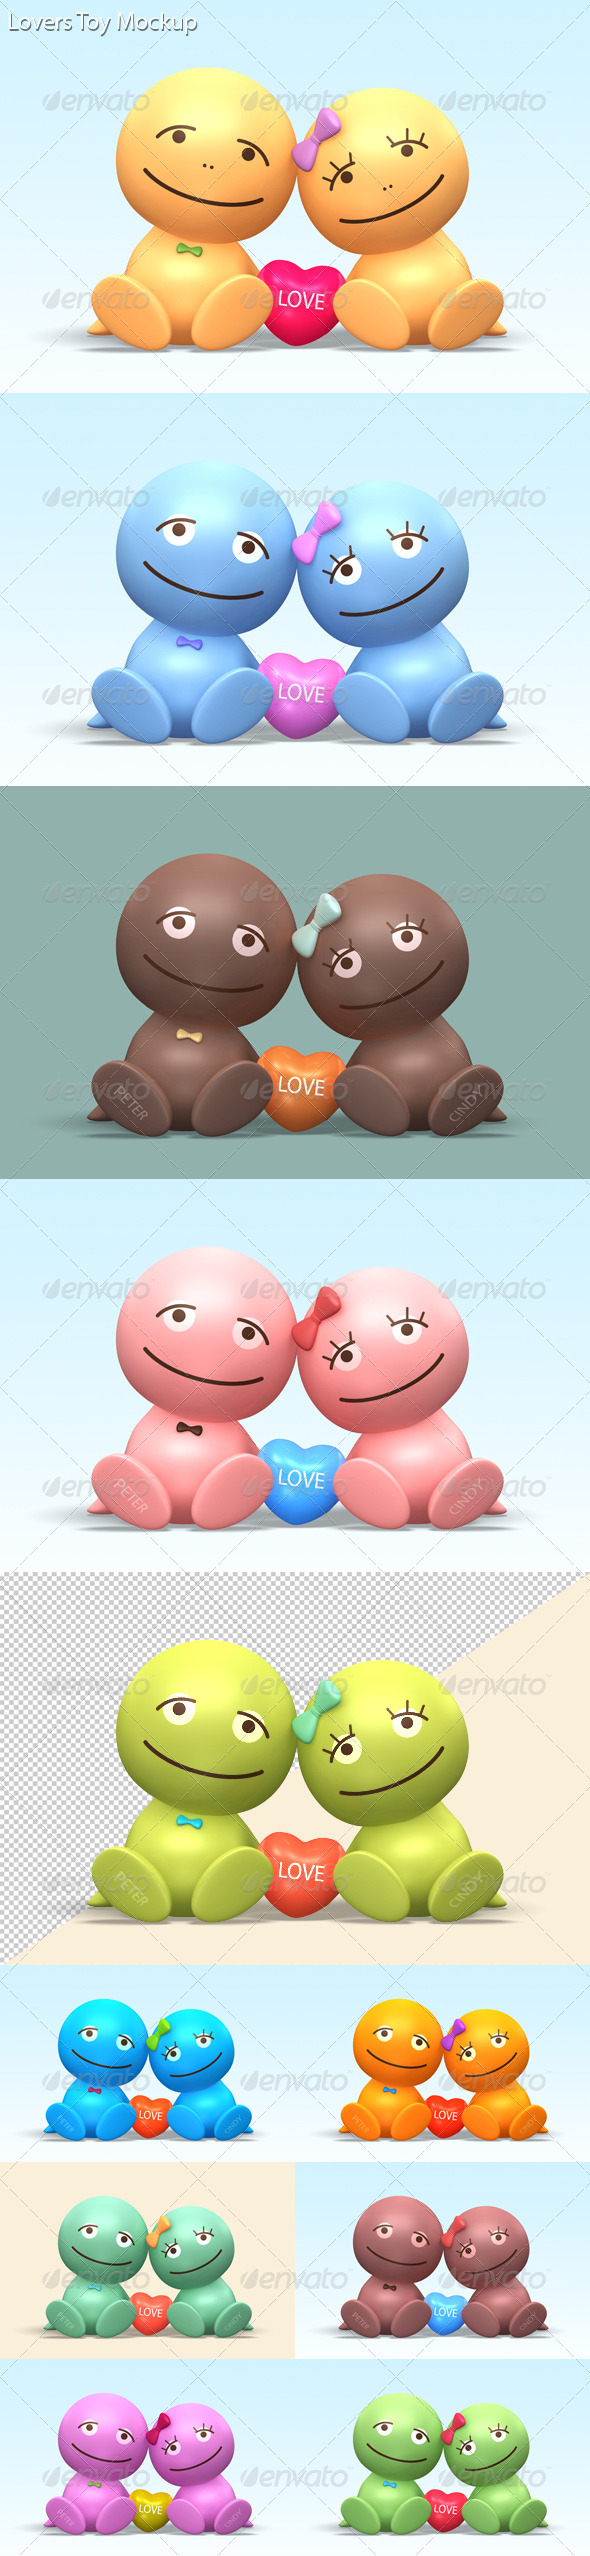 Lovers Toy Mock-up